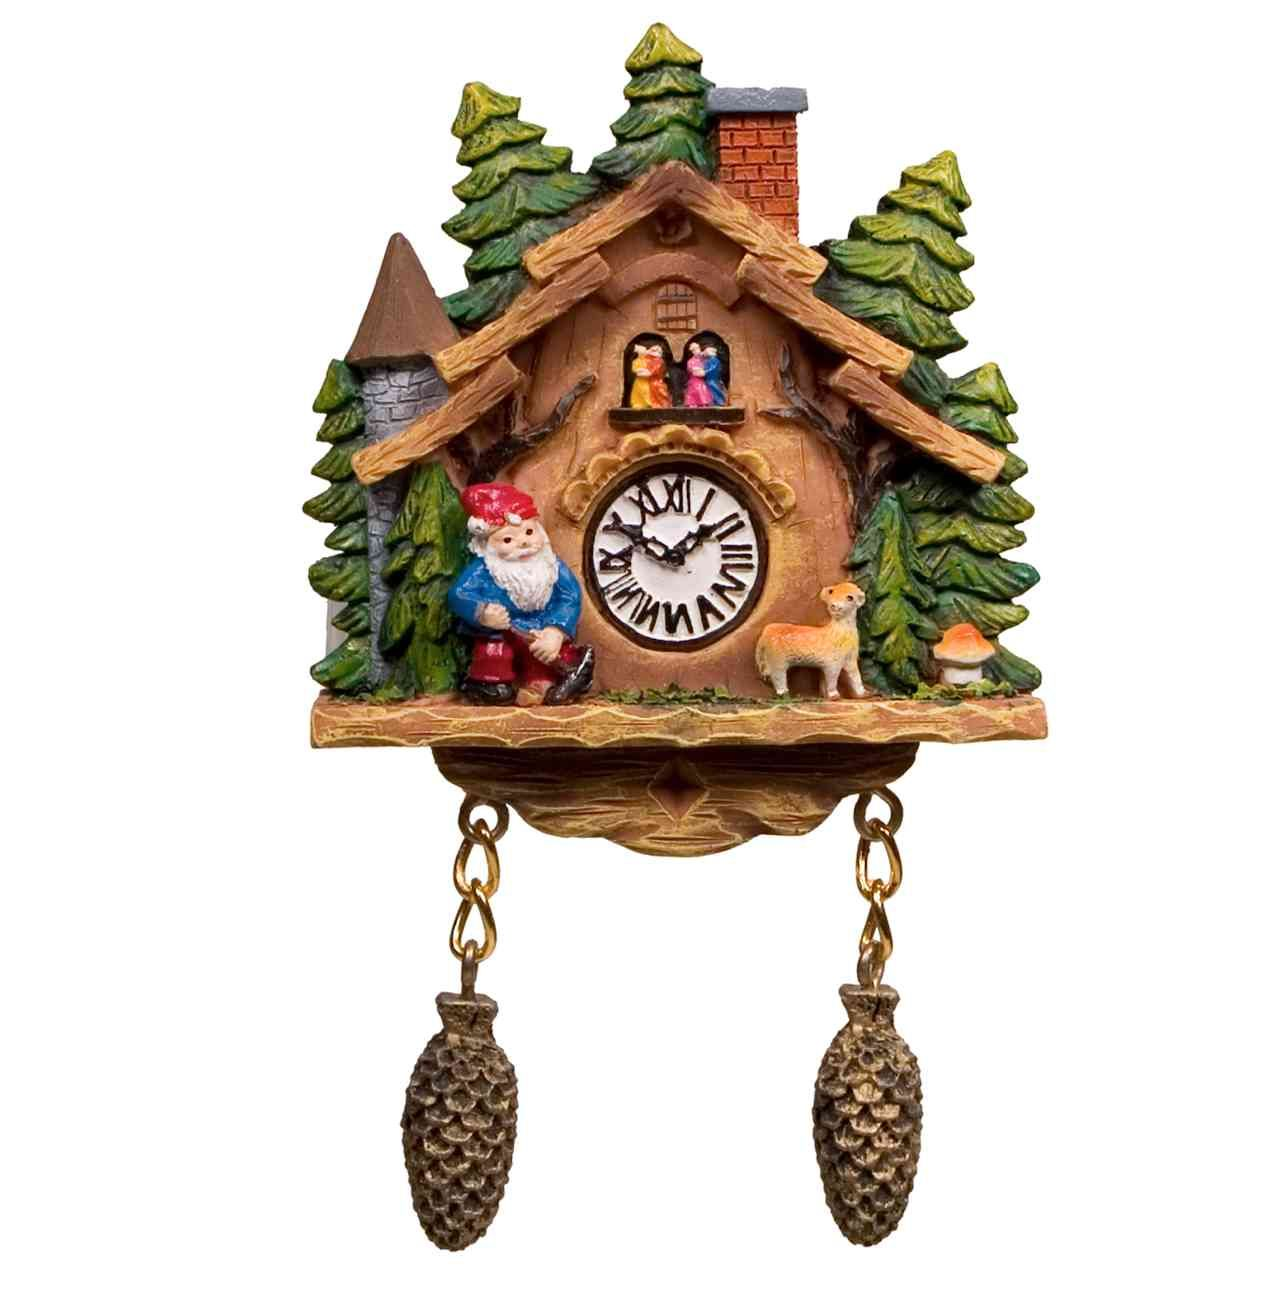 Cuckoo Clock Magnet - Gnome - only $4.40 | Unique Gifts & Home Decor | Karma